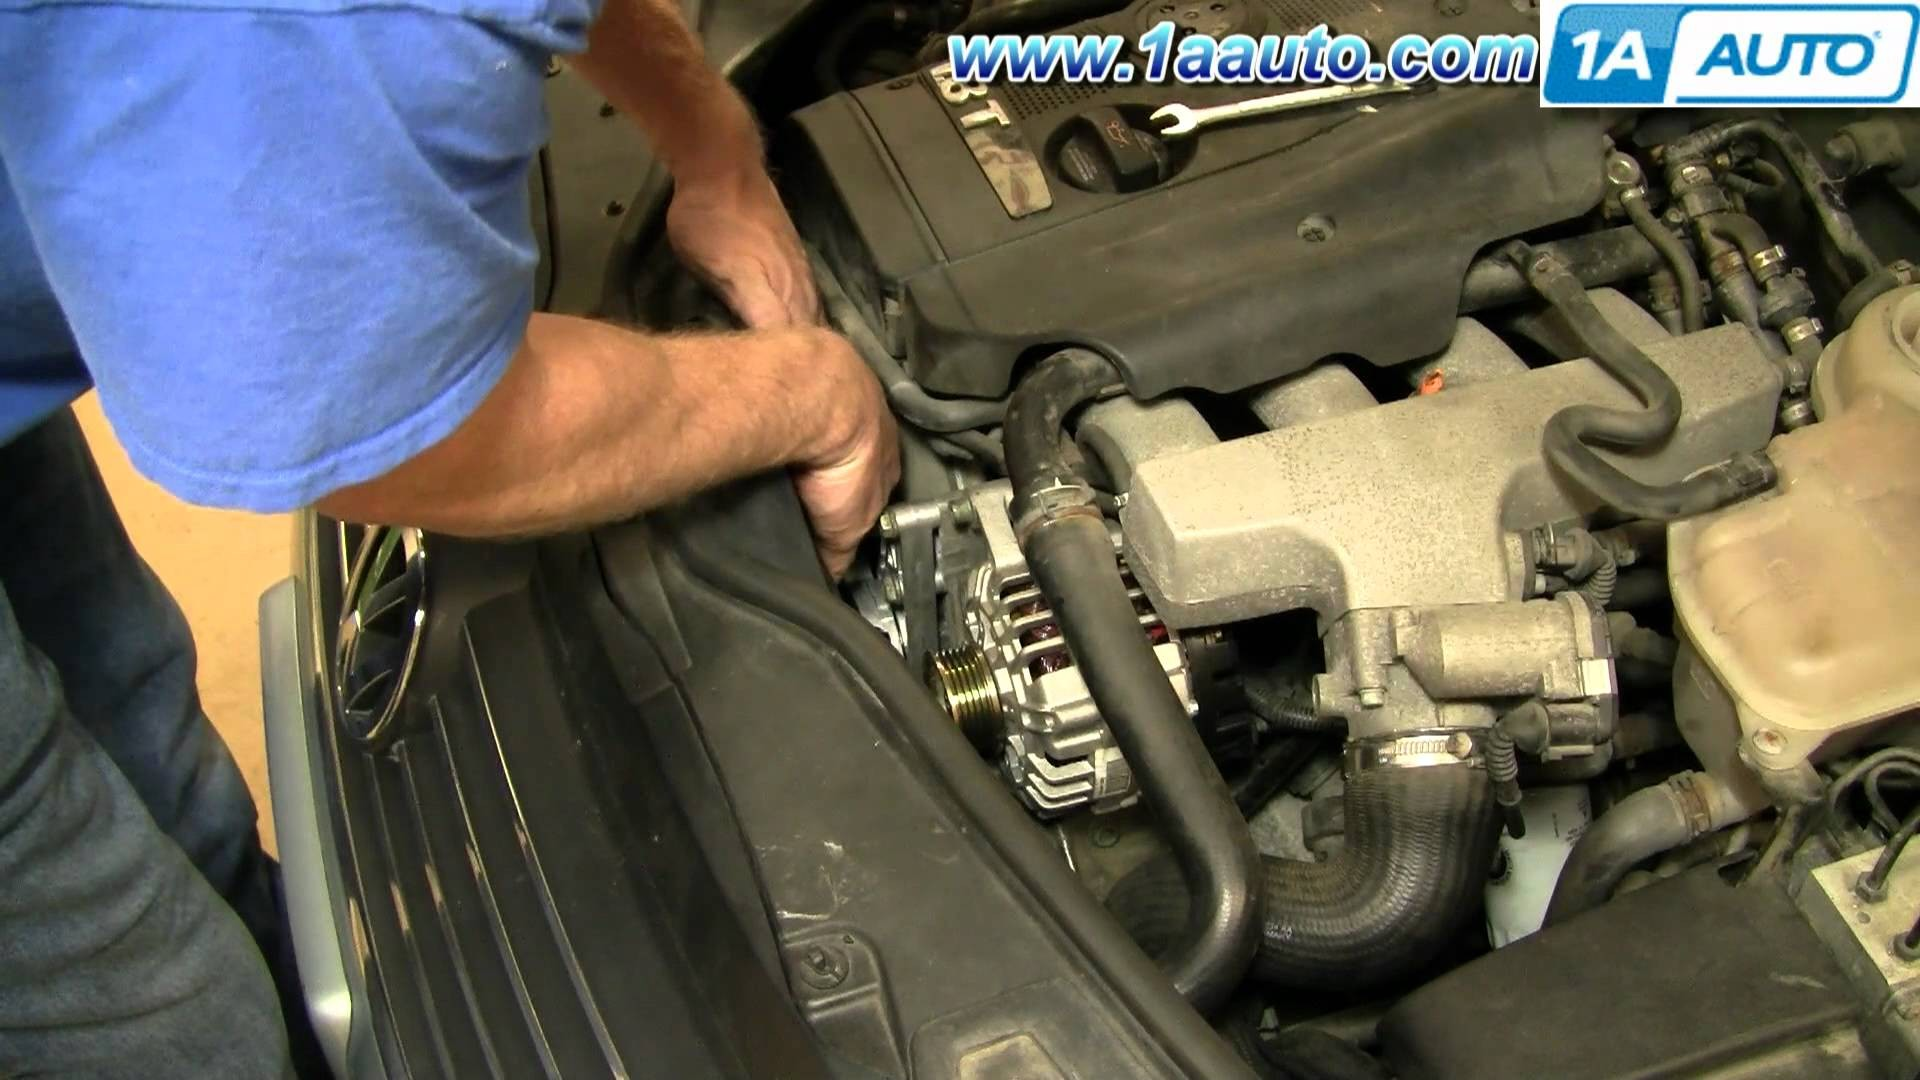 2002 Vw Passat 1 8 T Engine Diagram 2000 Audi A6 Rs6 Avant How To Install Replace Alternator Power Steering